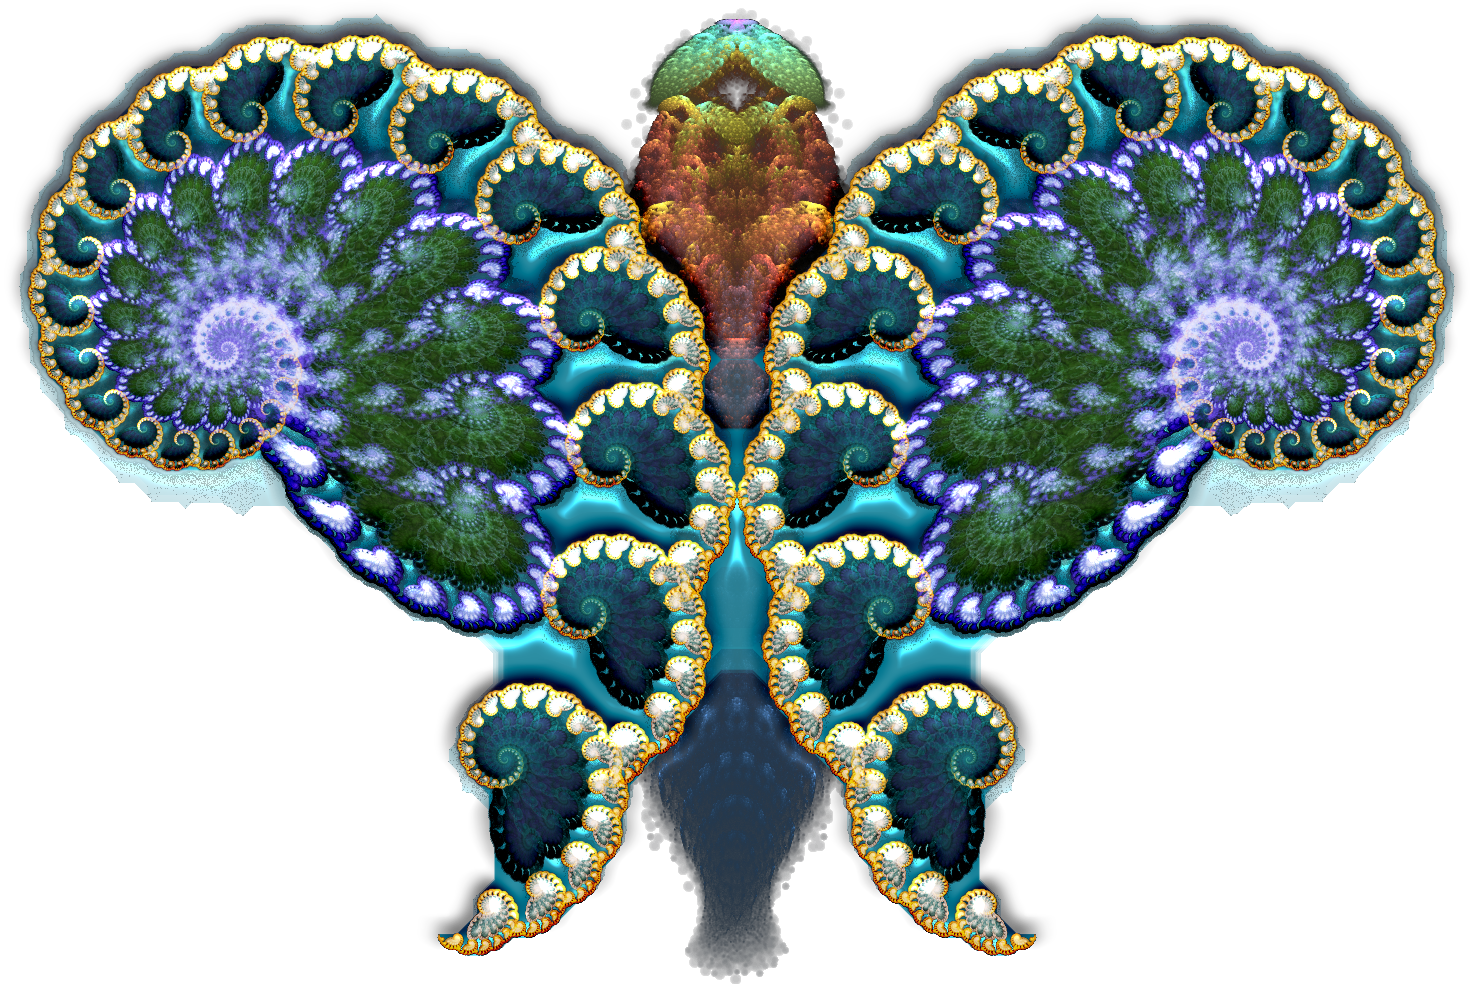 Fractal butterfly. Eastern Philosophy and VR